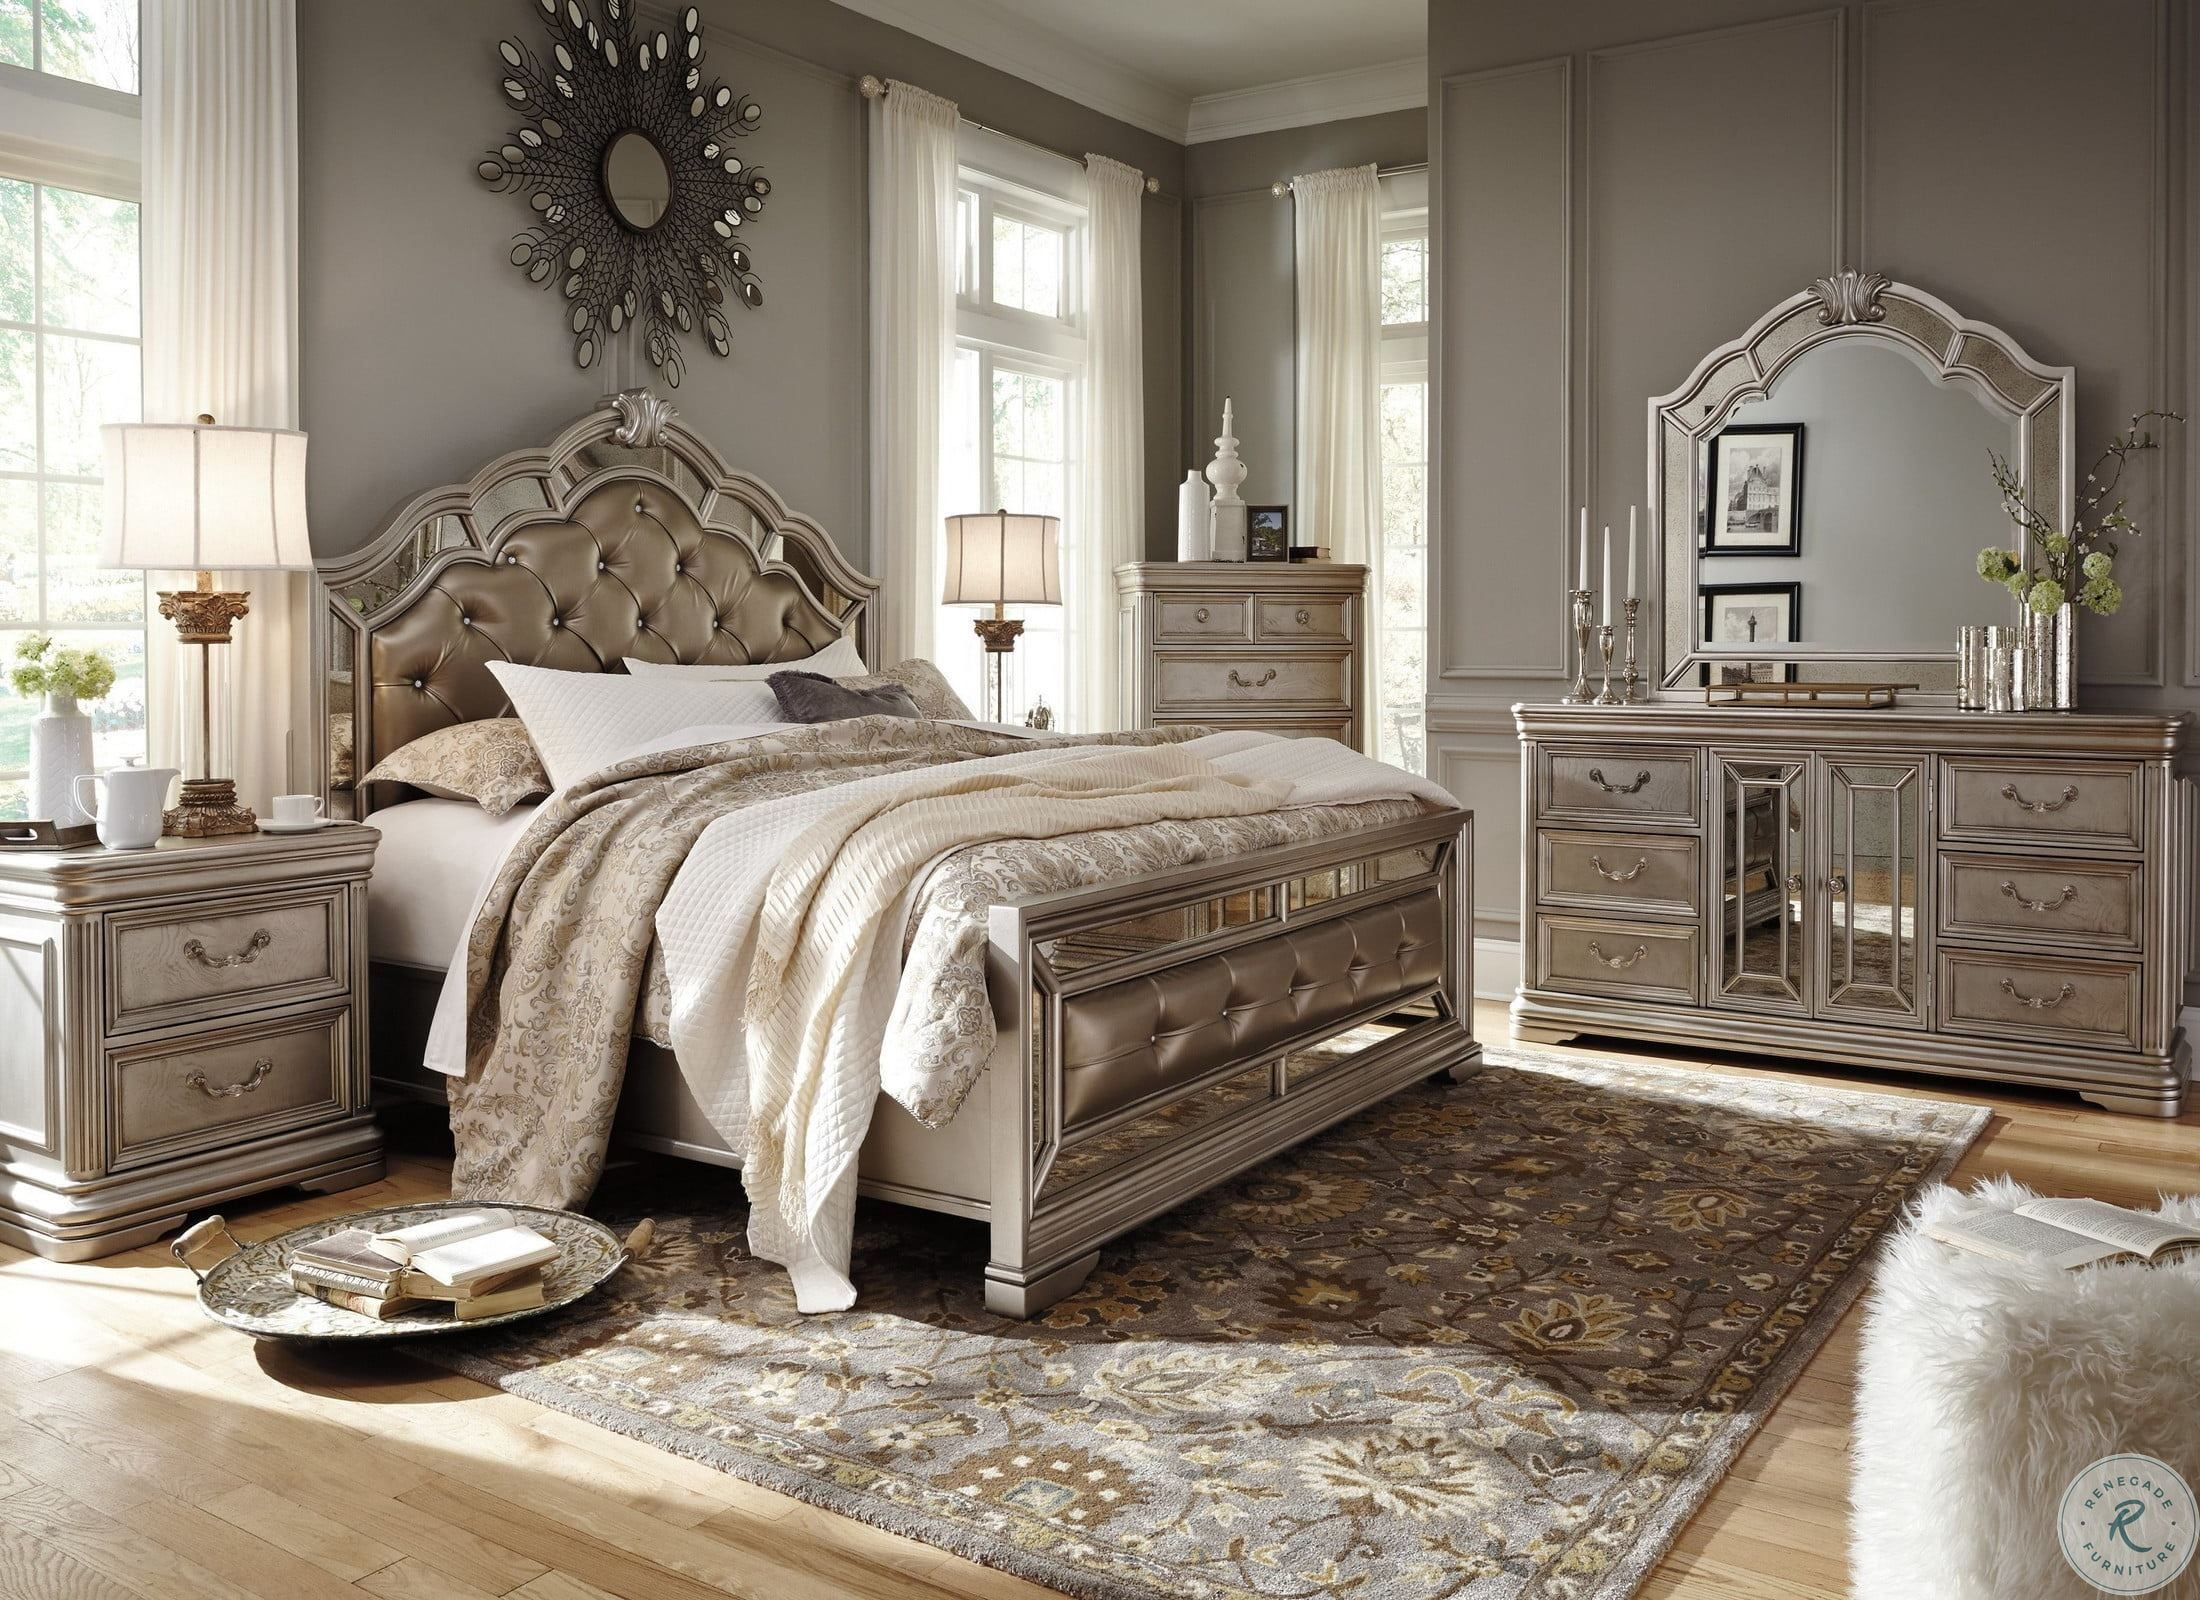 Birlanny Silver Upholstered 4 Piece Panel Bedroom Set from